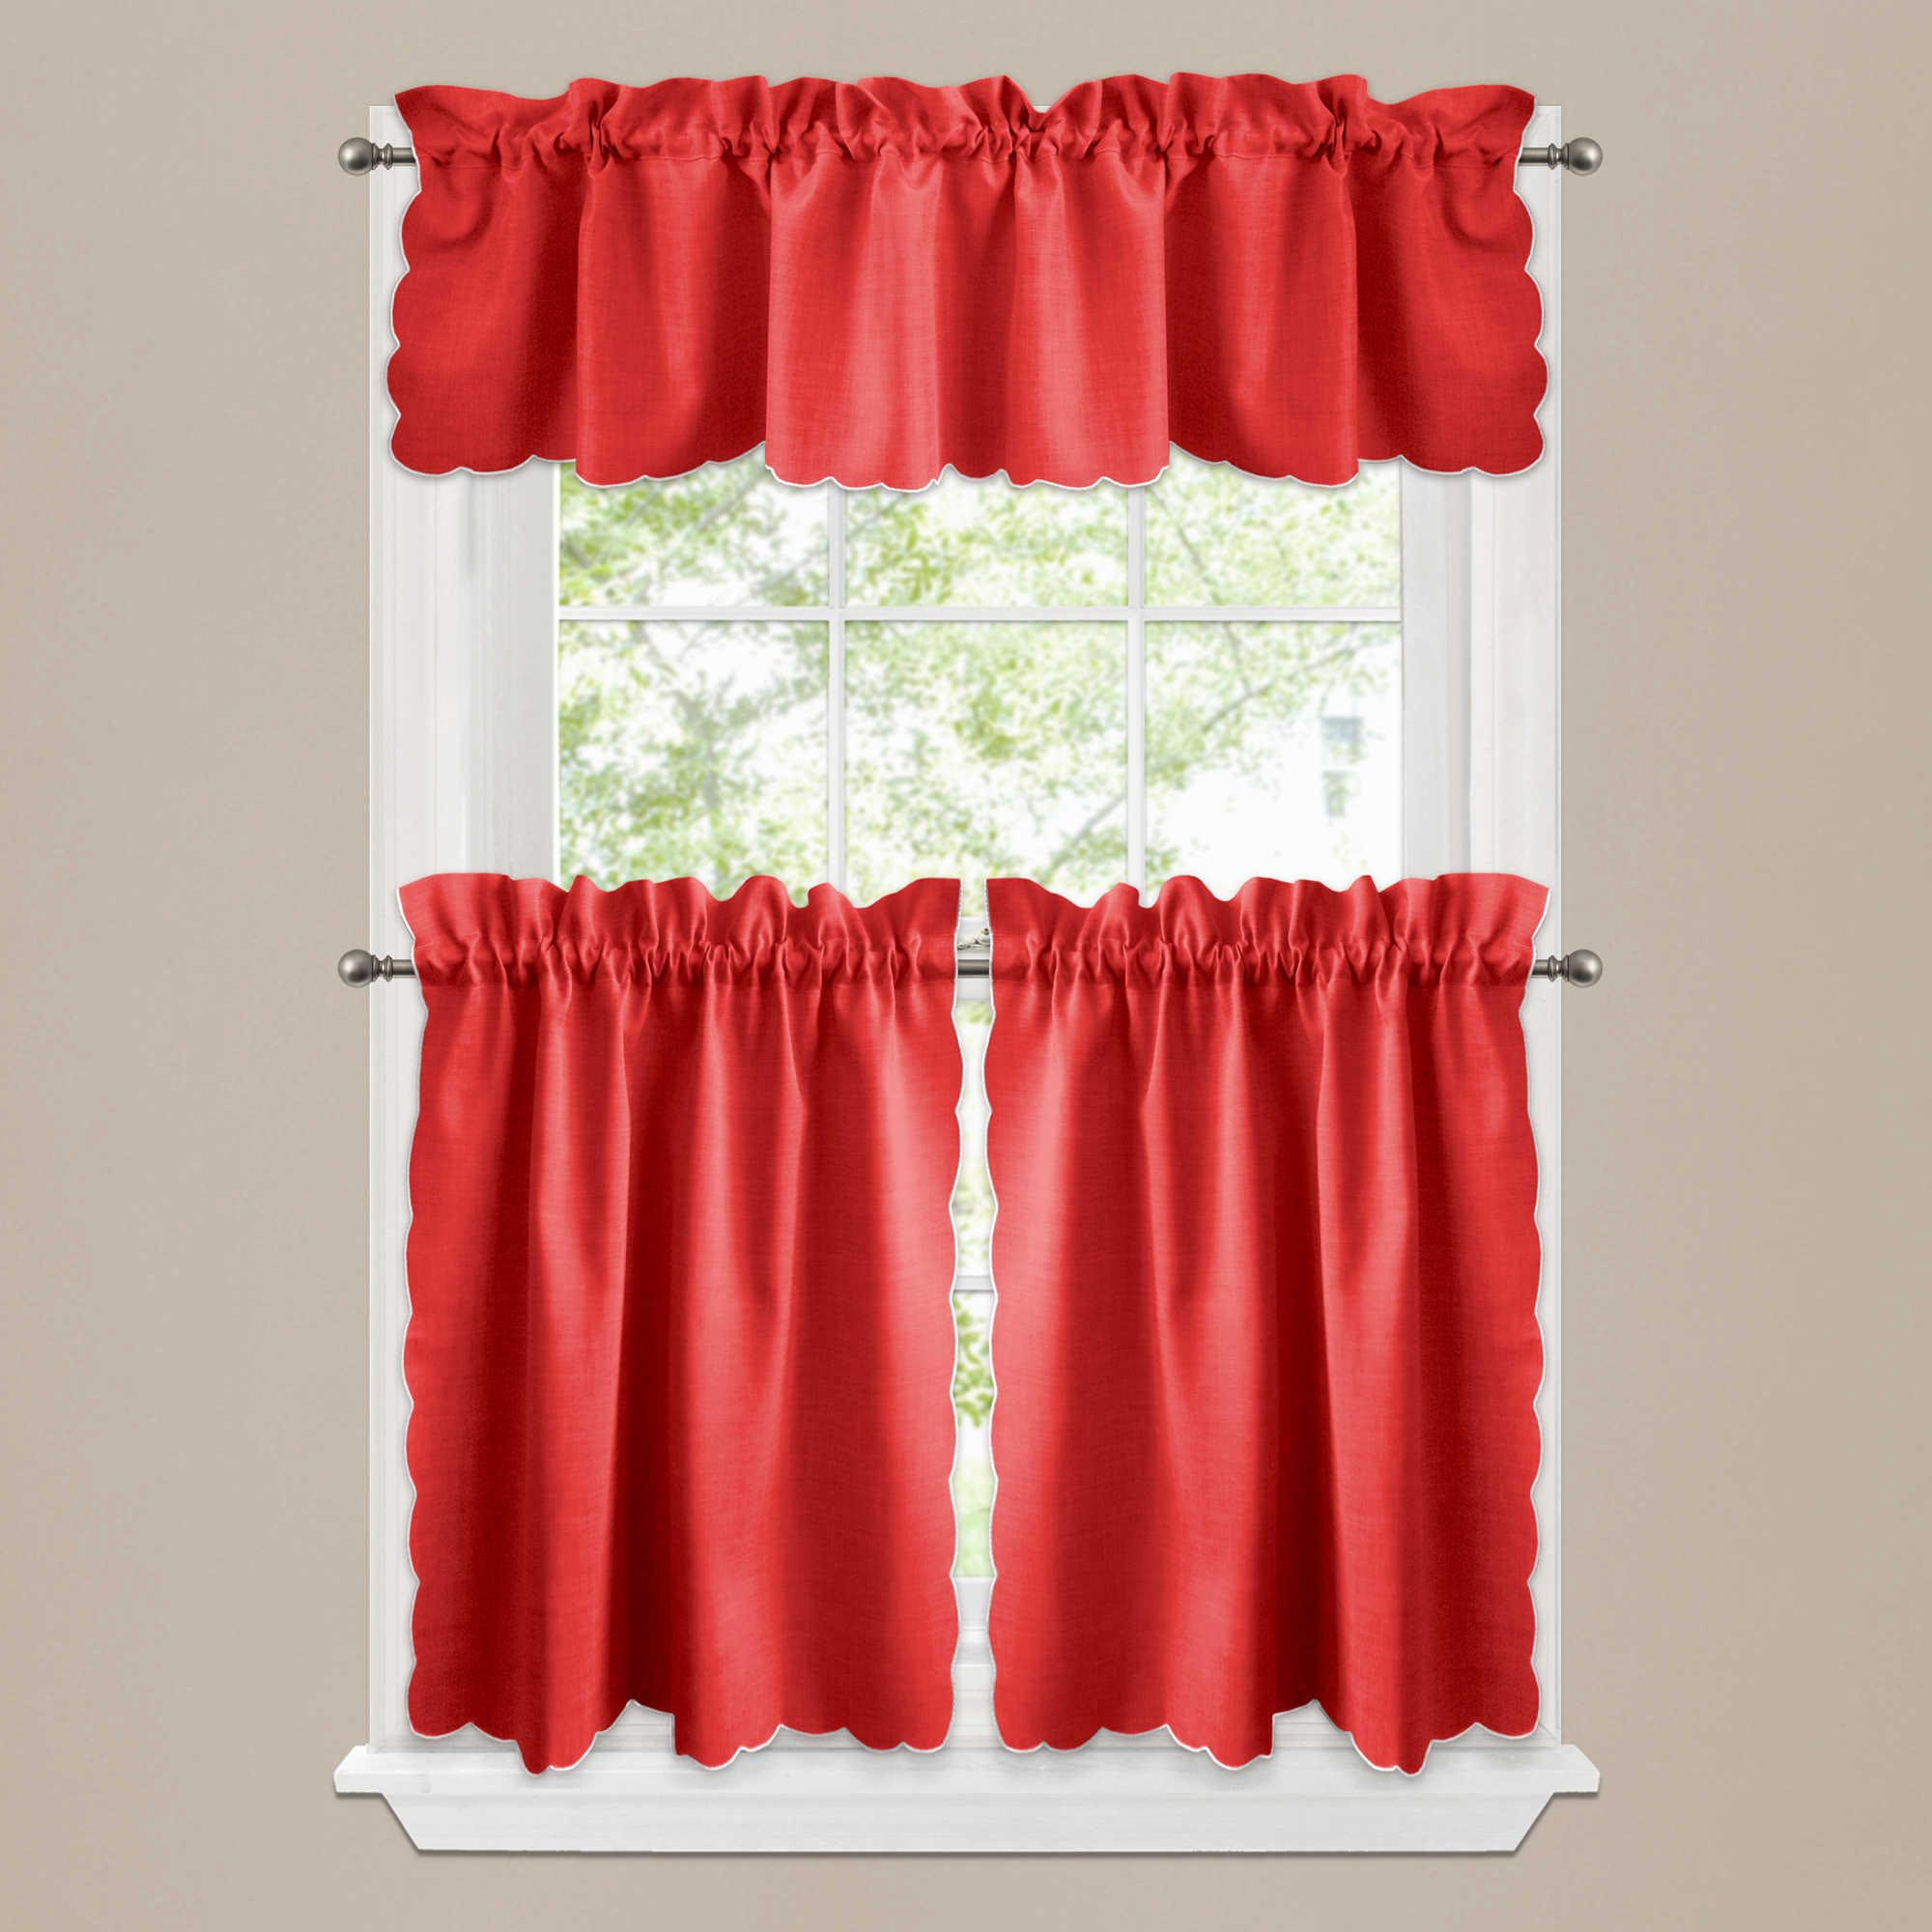 Types of Valances for Kitchen